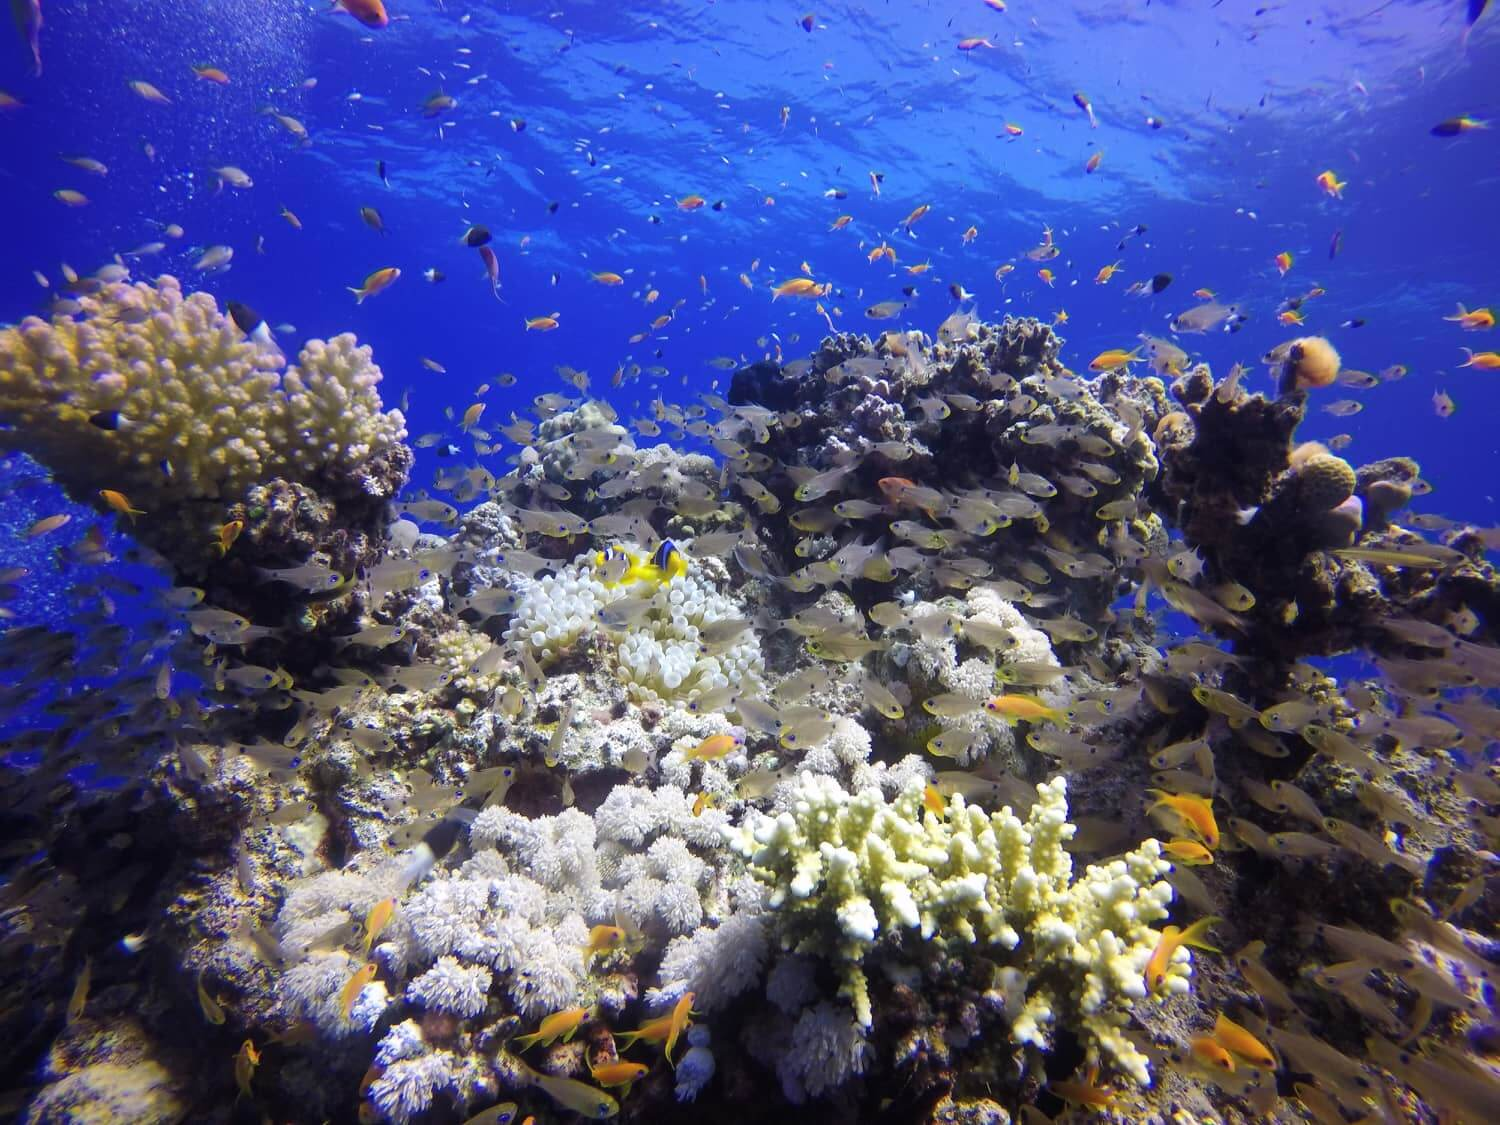 Egypt-REDSEA-Hurghada-DivePro-Academy-Scuba-Diving-Center-Beautiful-Coral-Reef